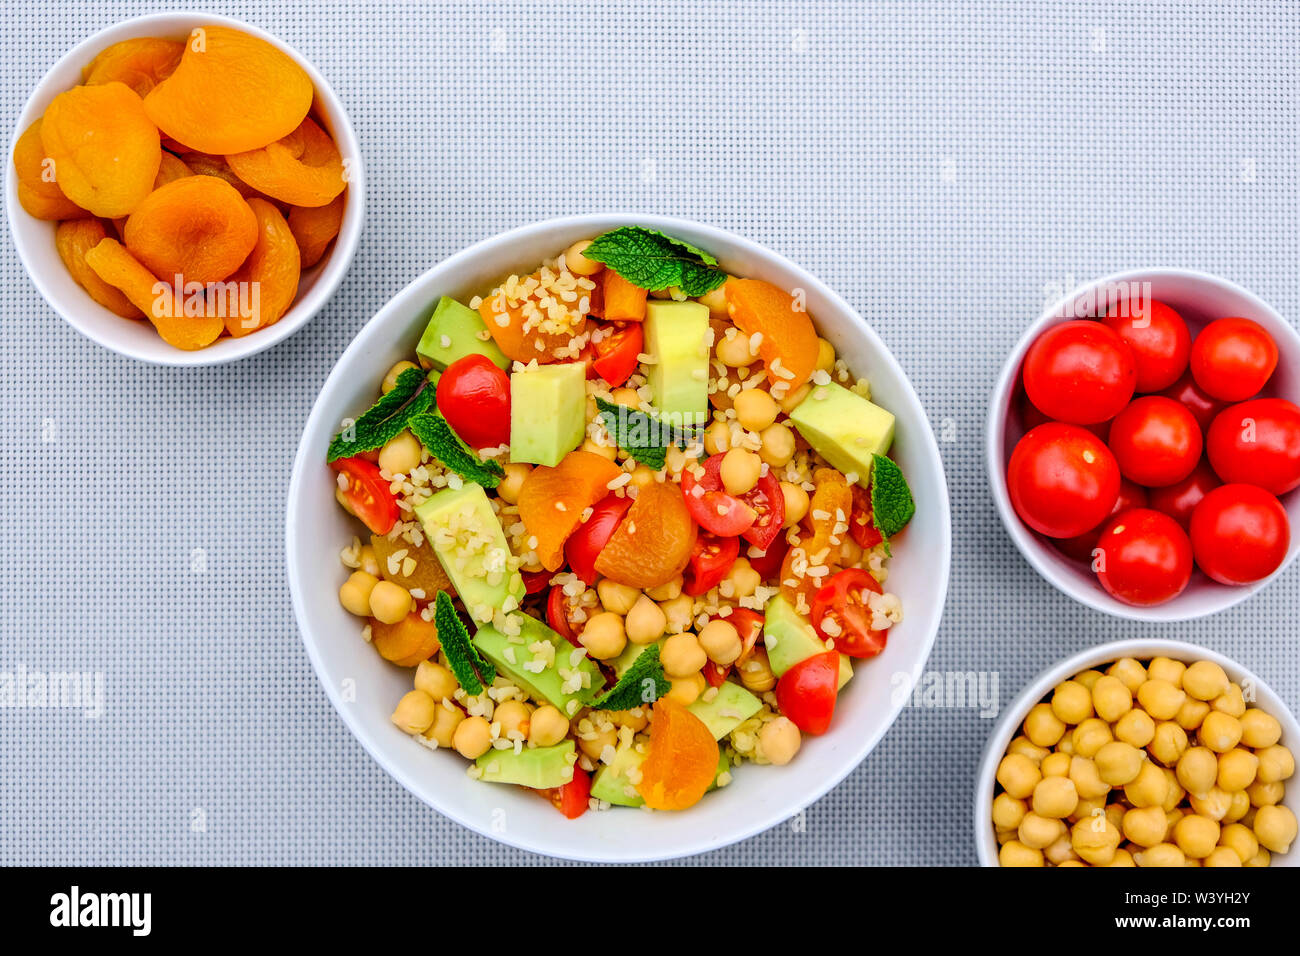 Healthy Vegetarian Lunch Bowl With Fruit and Vegetables Including Avocado, Apricots, Tomatoes, Chickpeas and Bulgur Wheat - Stock Image